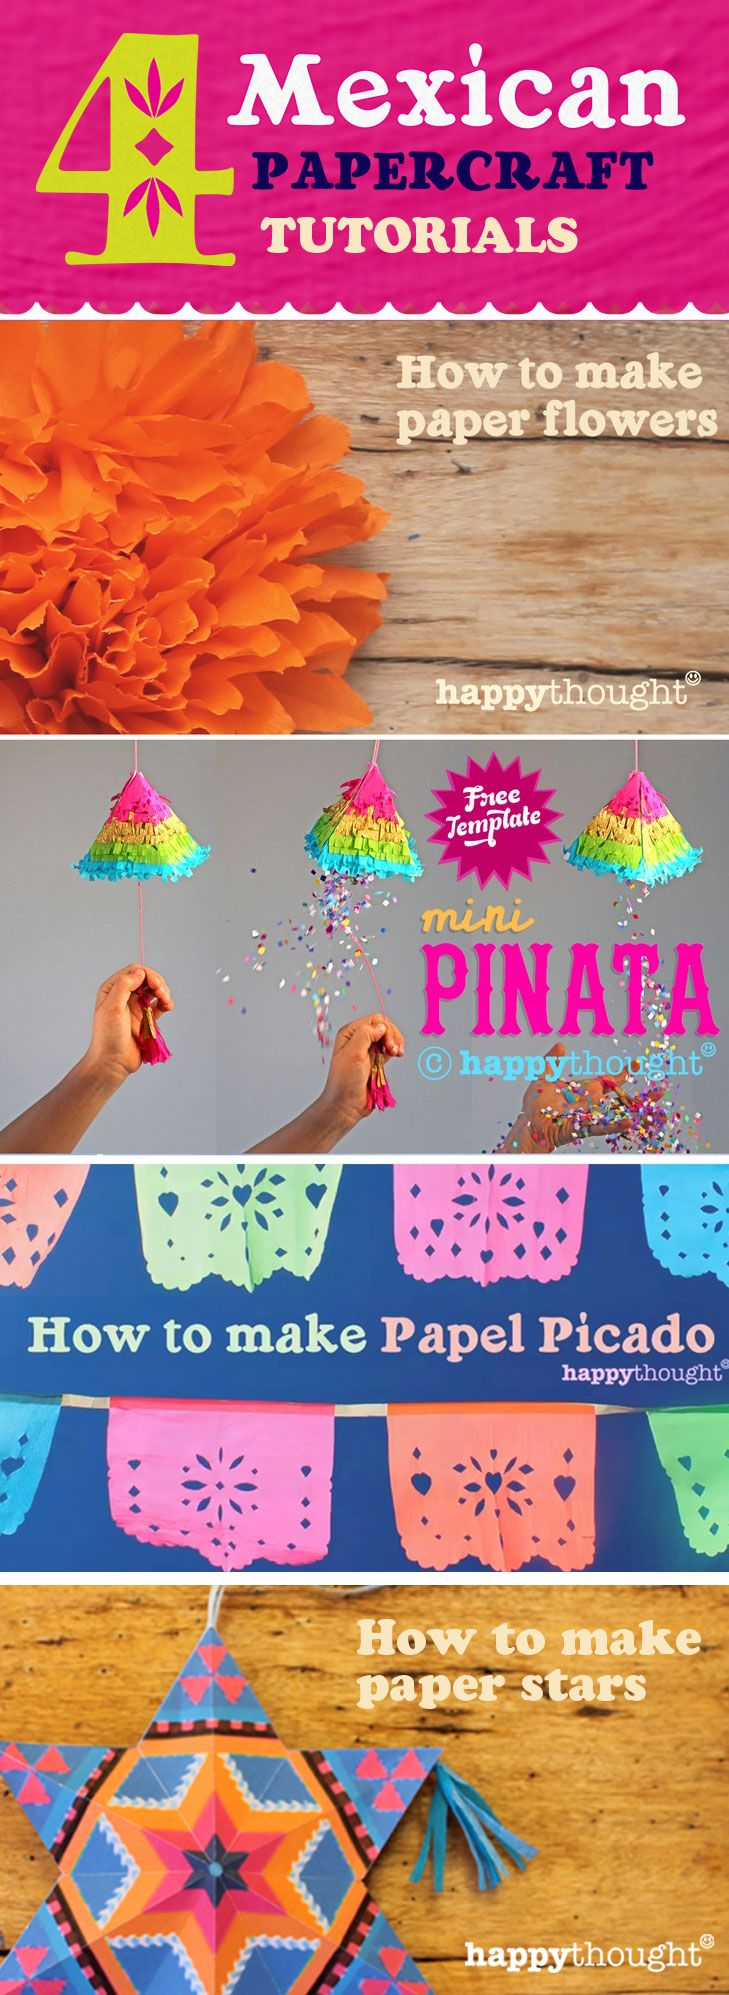 Mexican fiesta party decorating ideas hosting guide - 4 Mexican Paper Crafts For Day Of The Dead Decorations Simple And Fun Craft Tutorials